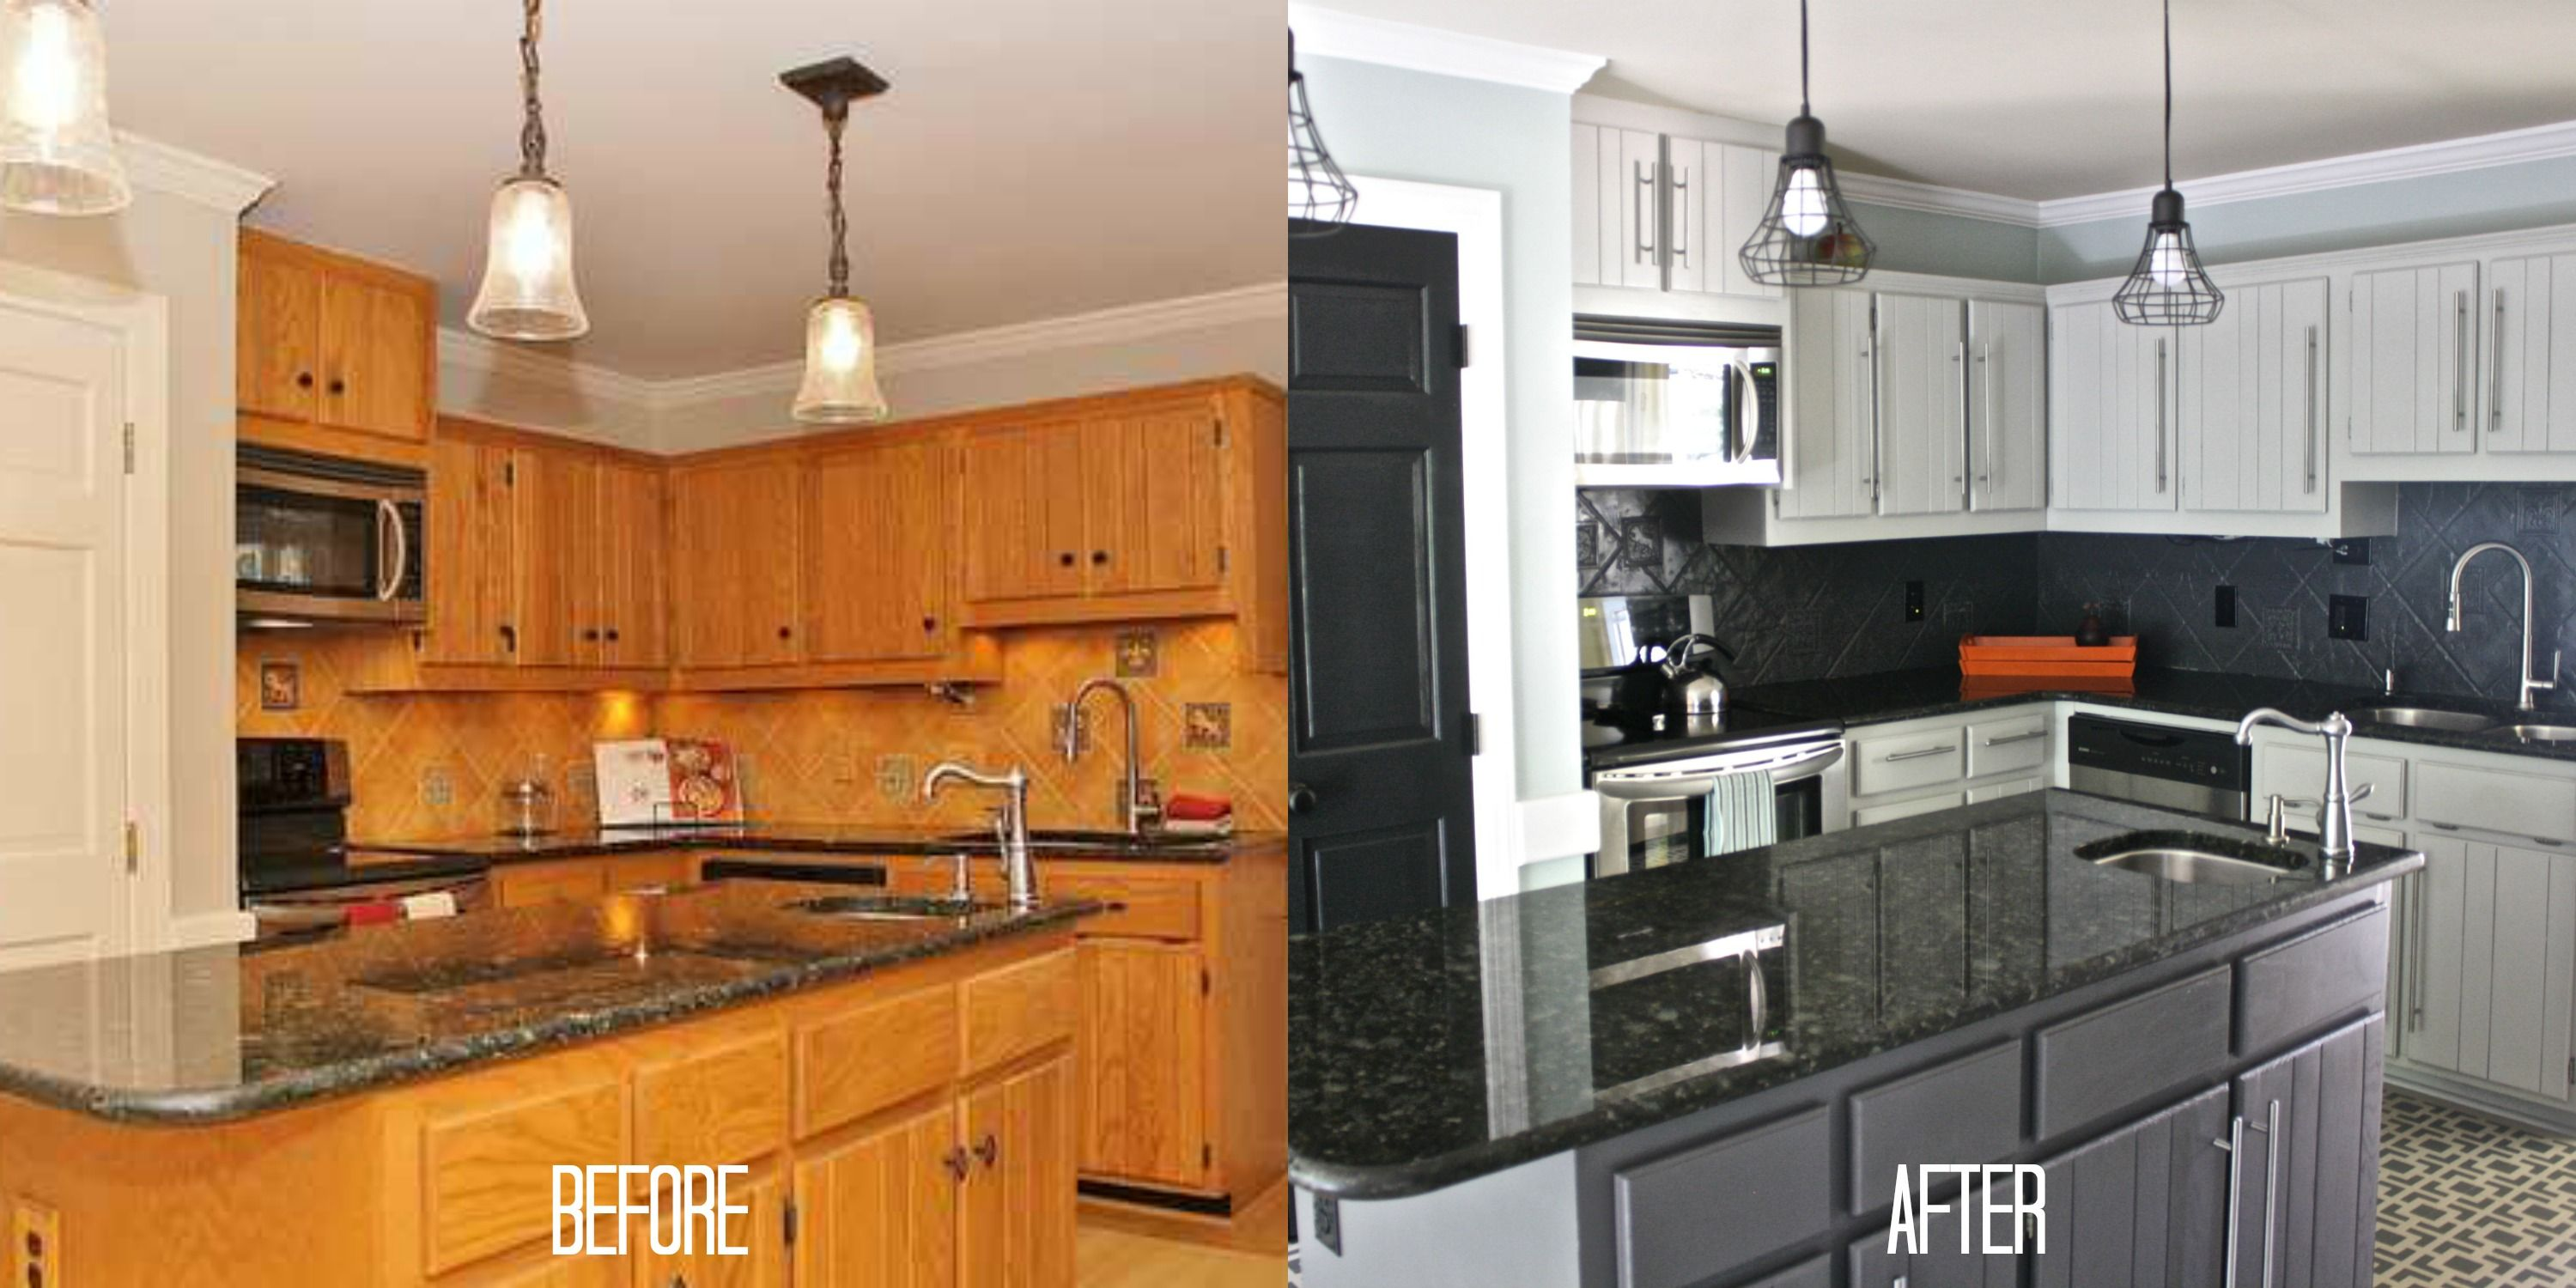 Uncategorized Kitchen Cabinet Paint how much does it cost to paint kitchen cabinets 17 oncountertops gray a 1000